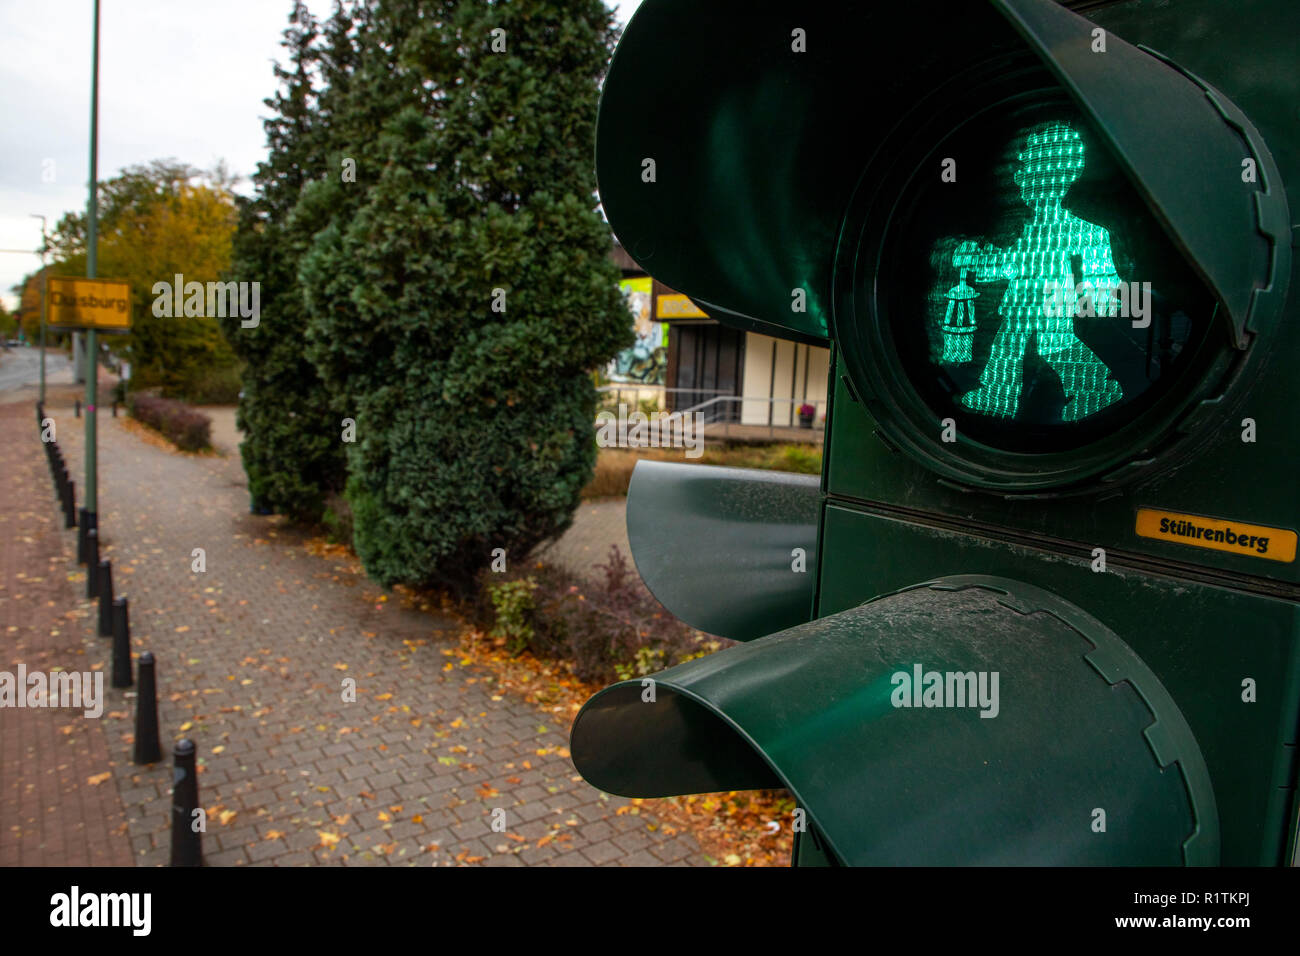 The first miners' traffic lights in the Ruhr area, at MŸlheimer Stra§e, in Duisburg, at the zoo. A red and green miner with miner's lamp shows the ped - Stock Image